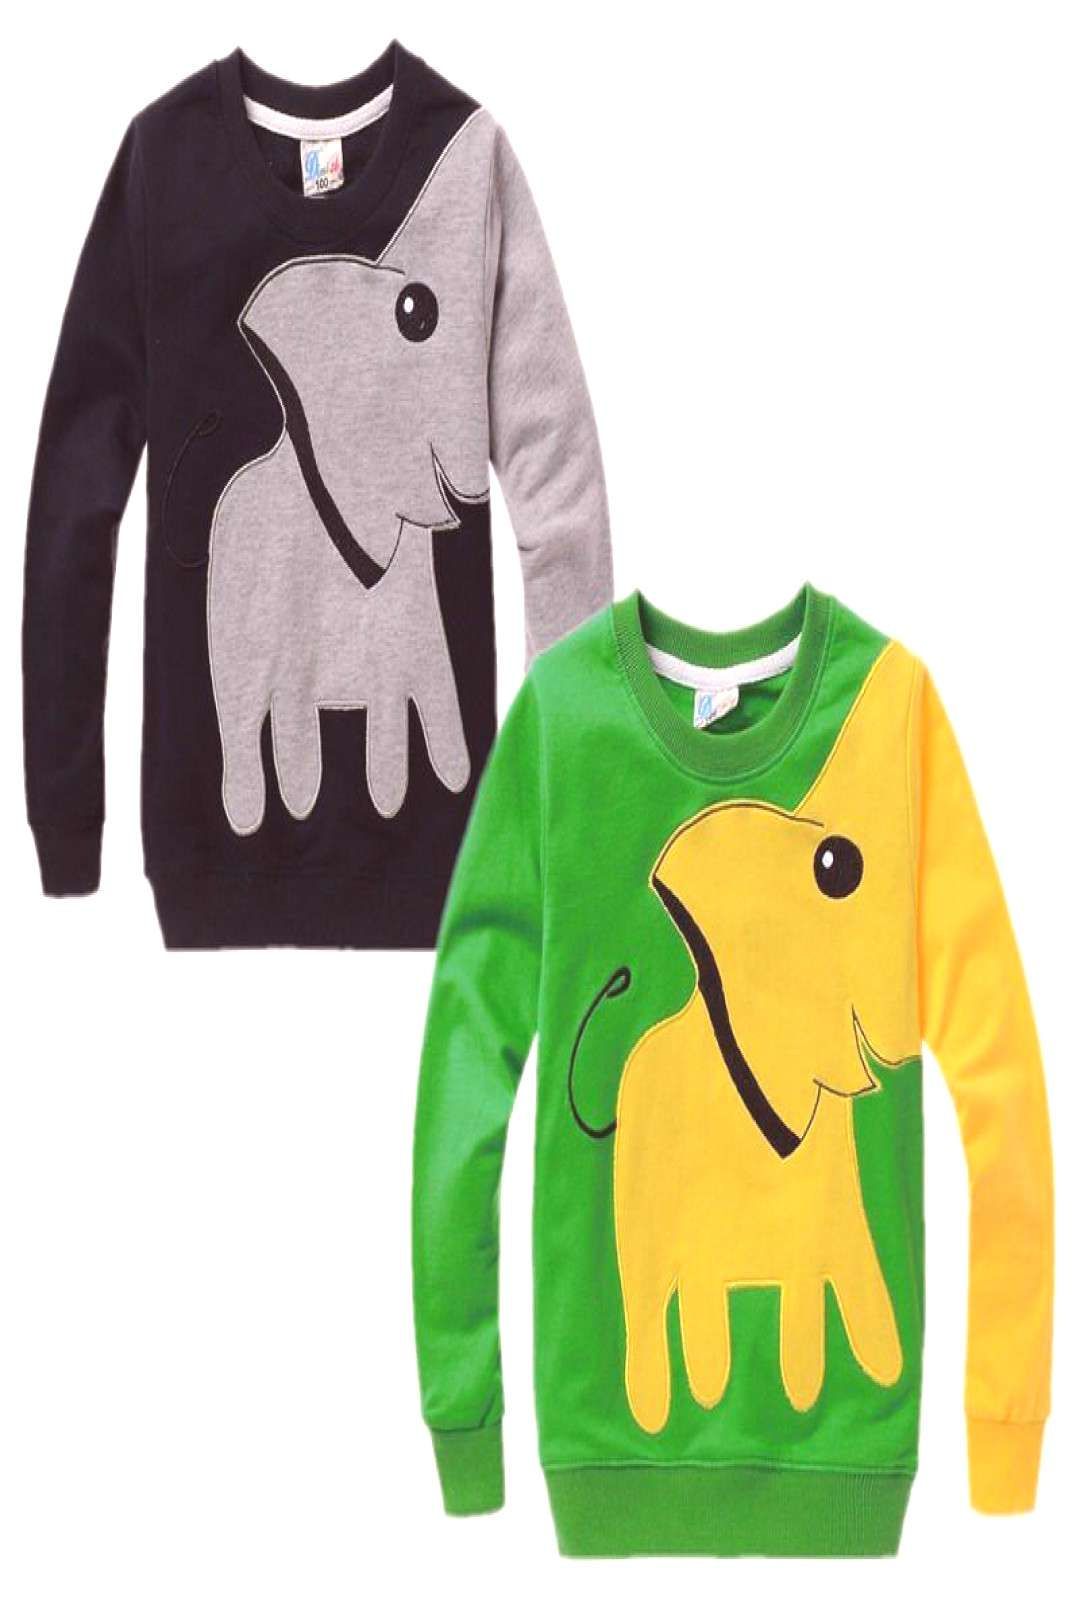 Elephant Baby Kids Boys Clothes Long Sleeve Tops T-shirt Pullover Sweatshirt kids boys tops Childre